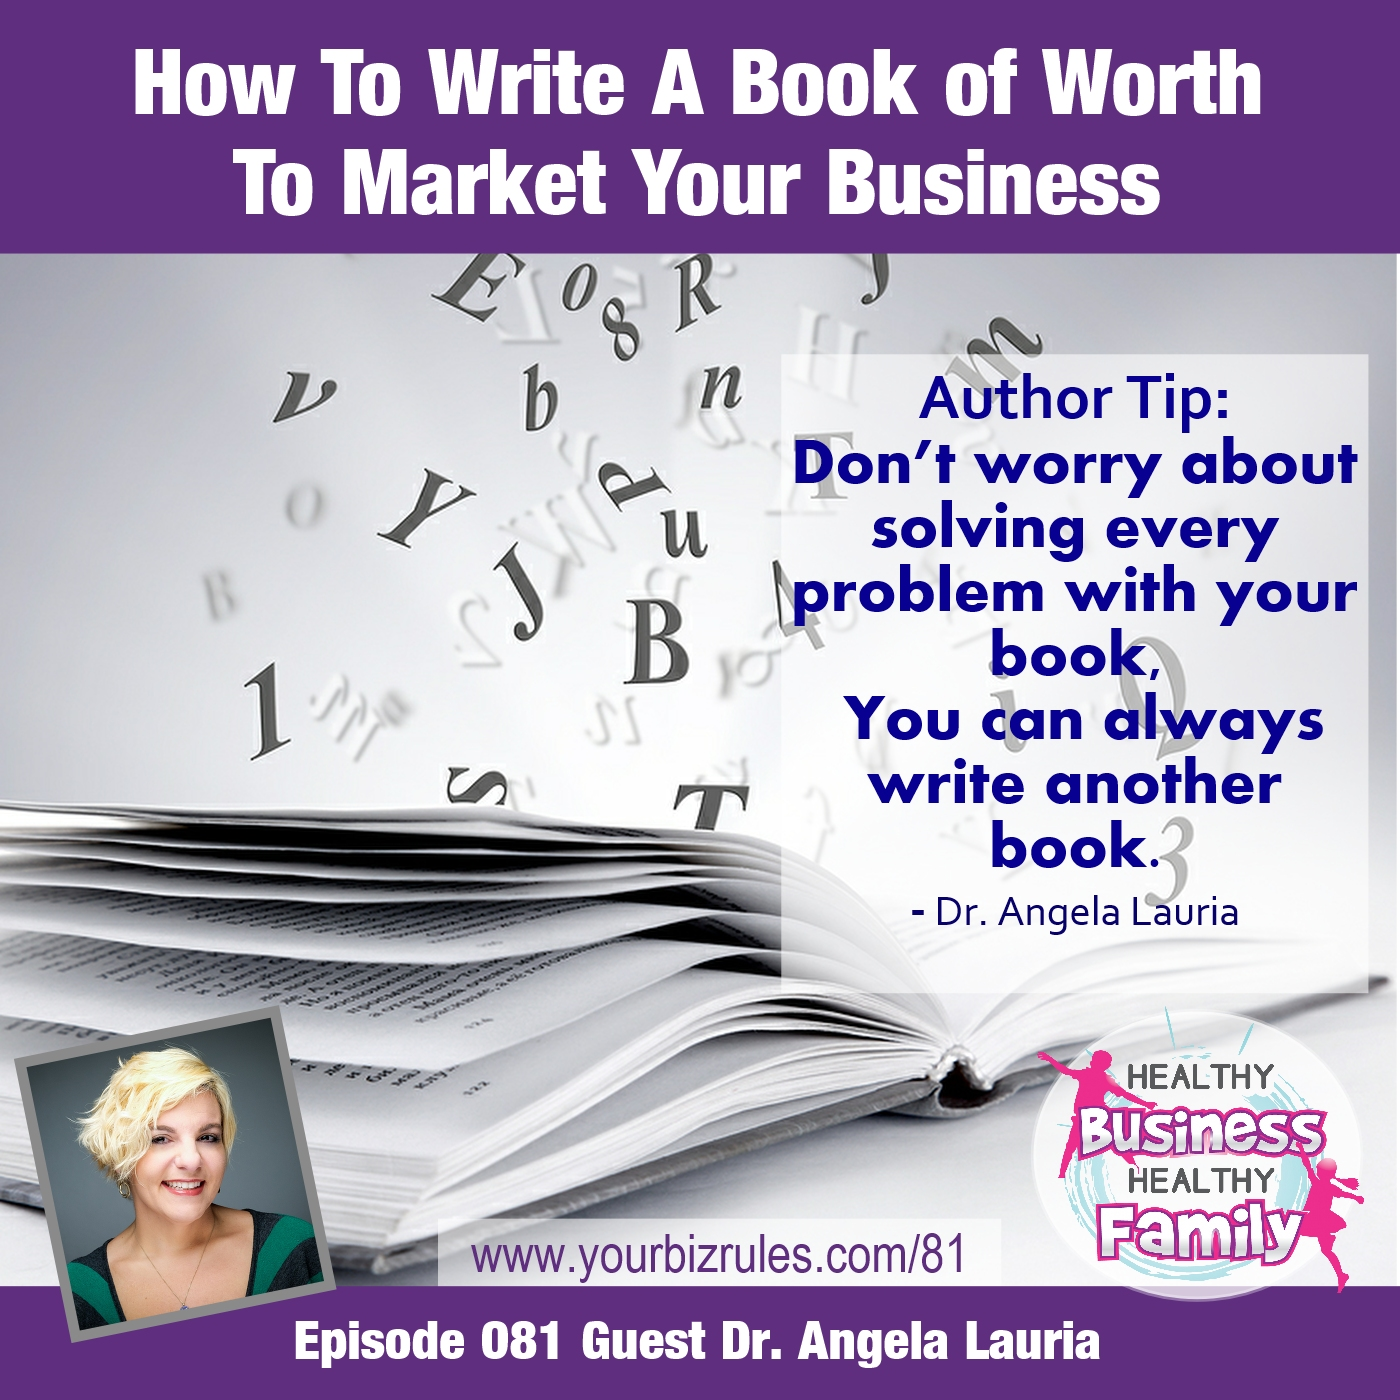 How To Write A Book Of Worth To Market Your Business Dallas Angela Lauria Business Coaching How To Use Book Writing To Market Your Business Book Writing Market Business